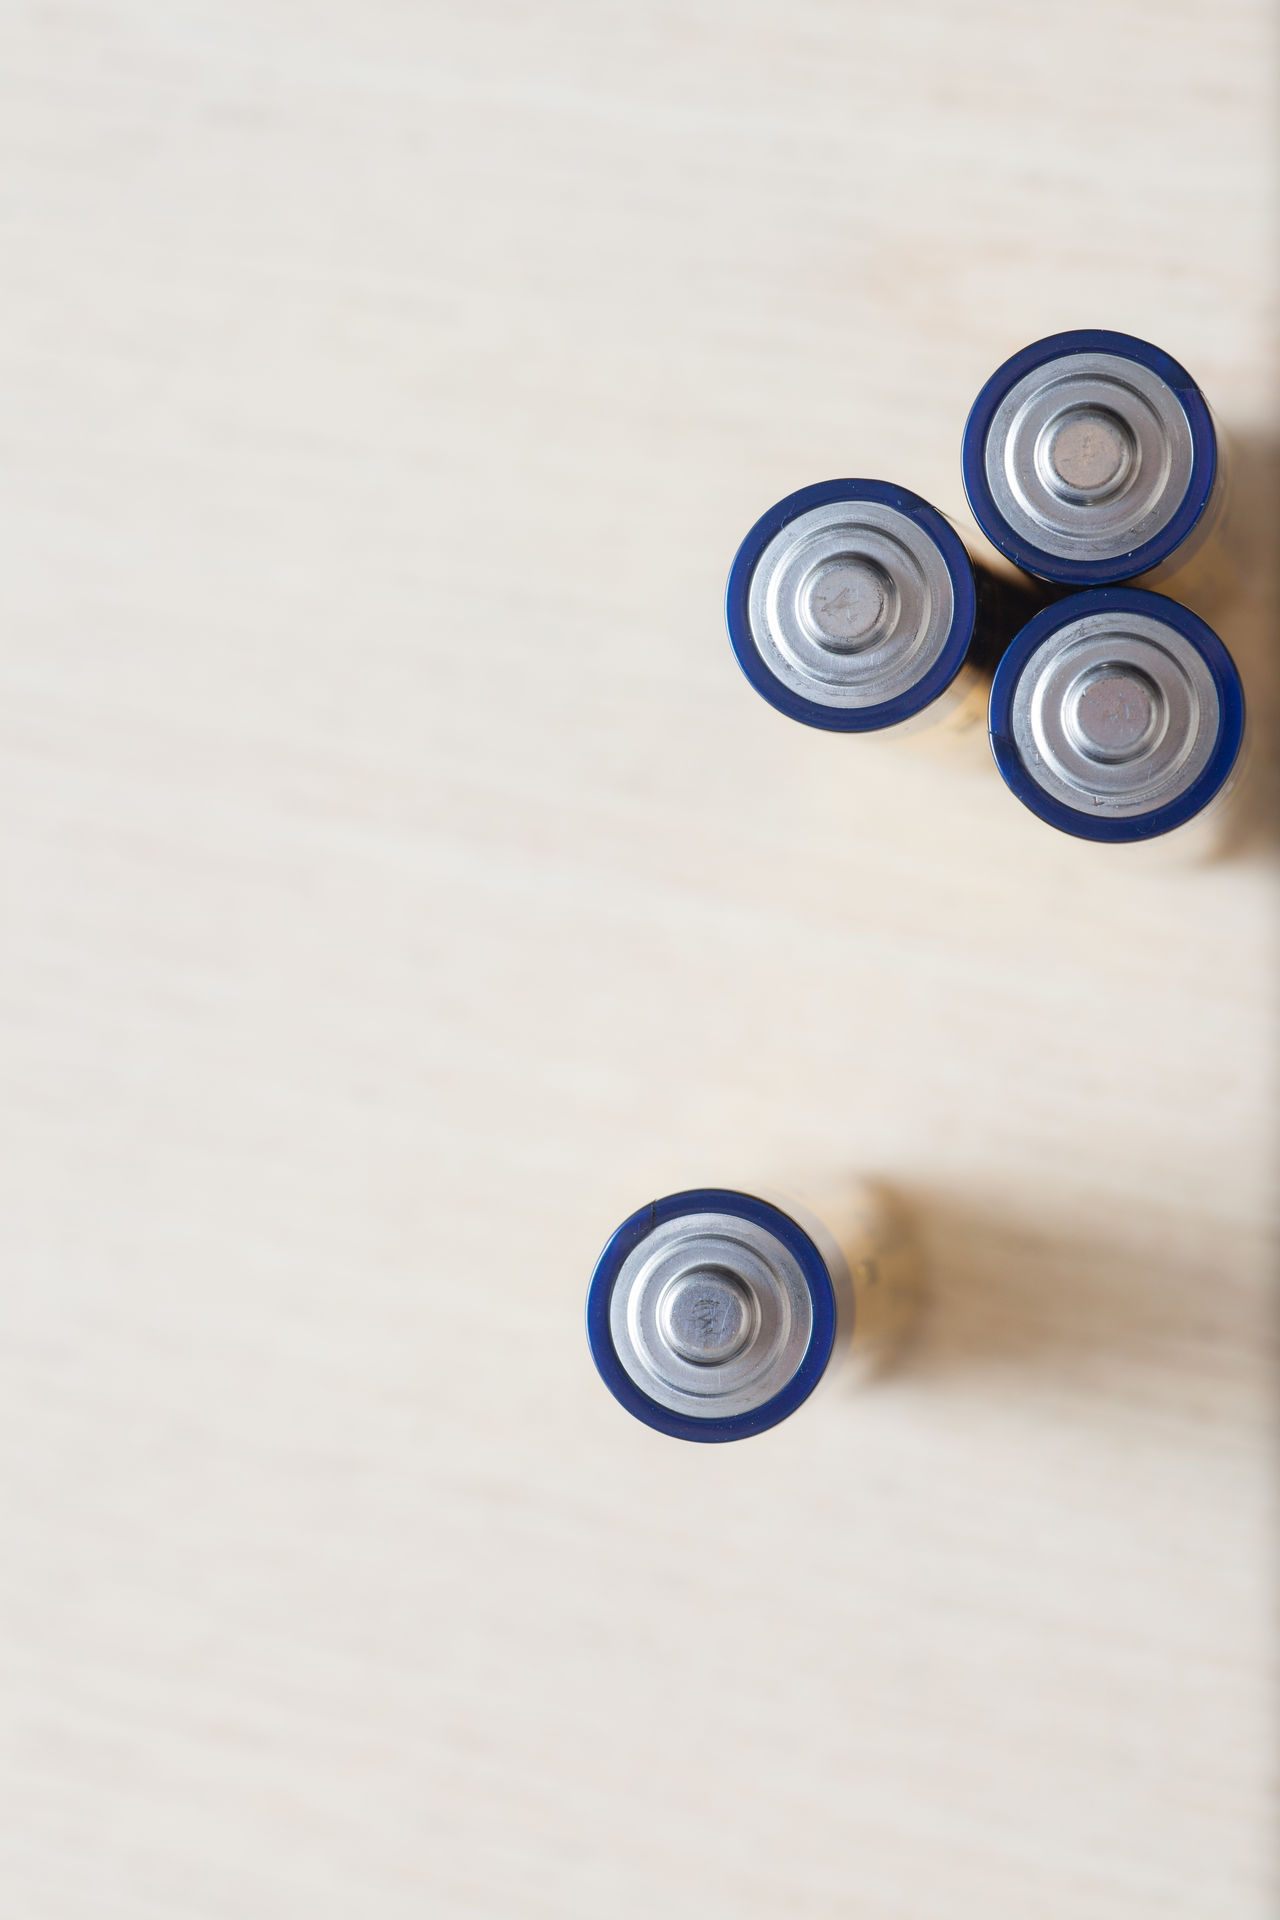 Batteries. A collection of alkaline batteries from above overhead view. Circles abstract pattern. Separate technology concept Abstract Aerial Shot Alkaline Background Batteries Battery Blue Circles Collection Electricity  Energy From Above  Future Lithium Muted Colors Natural Light New Talent This Week Old Pattern Power Stand Out From The Crowd Tech Technology Technology I Can't Live Without Top View